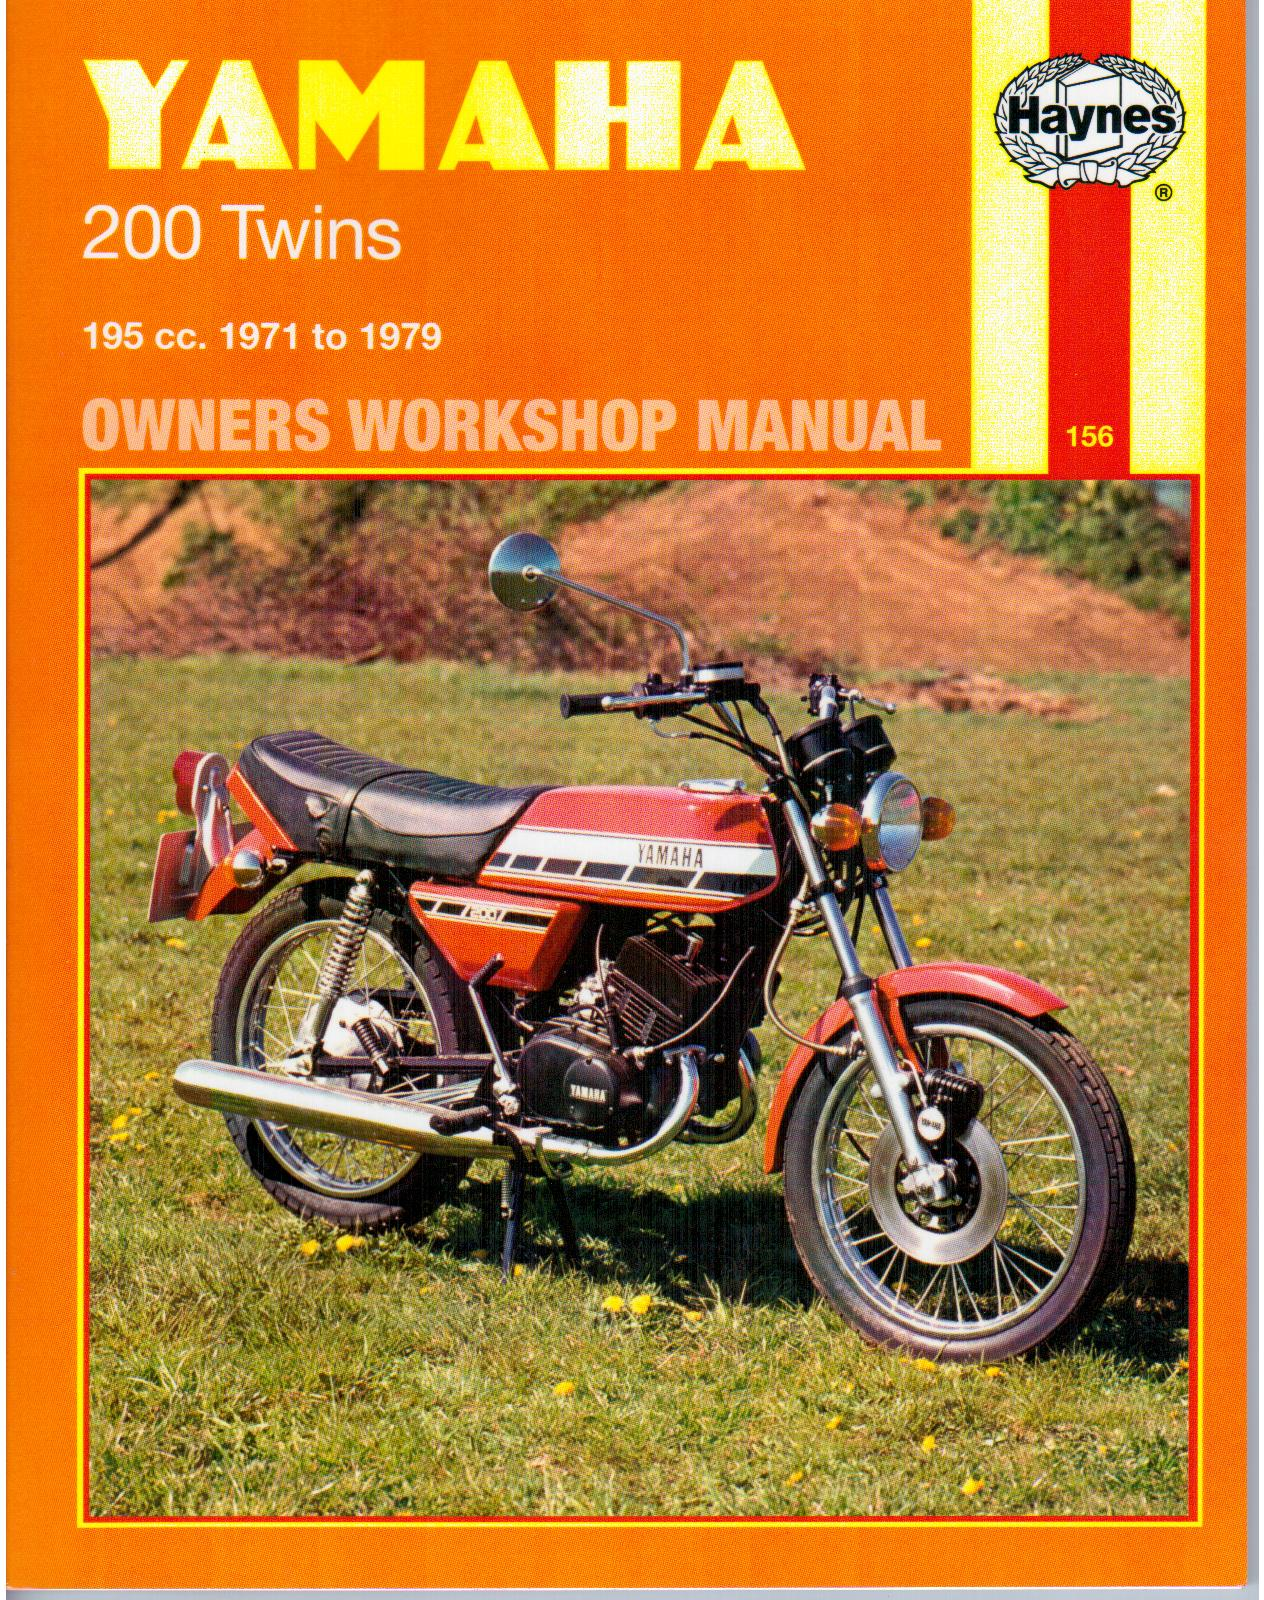 Rd200 Workshop Manual Man037 Manuals And Parts Books By Yamaha Wiring Diagram 1973